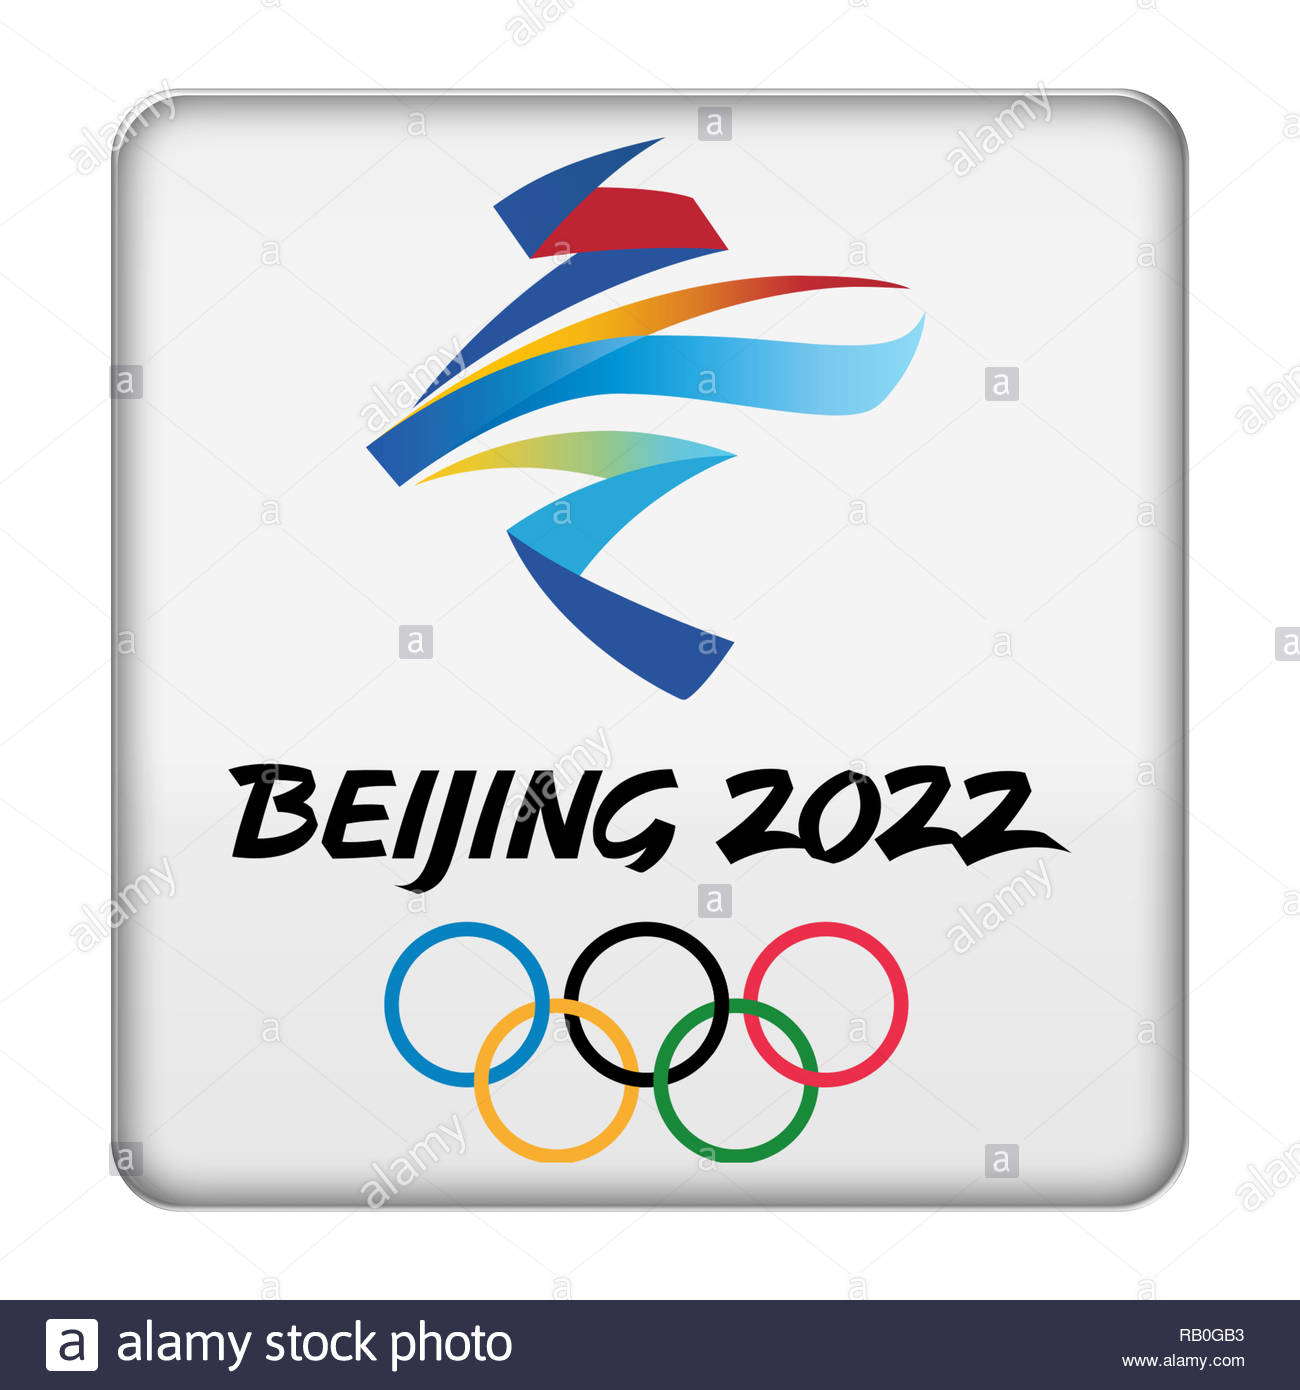 Beijing 2022 Winter Olympic Games logo sign - Stock Image